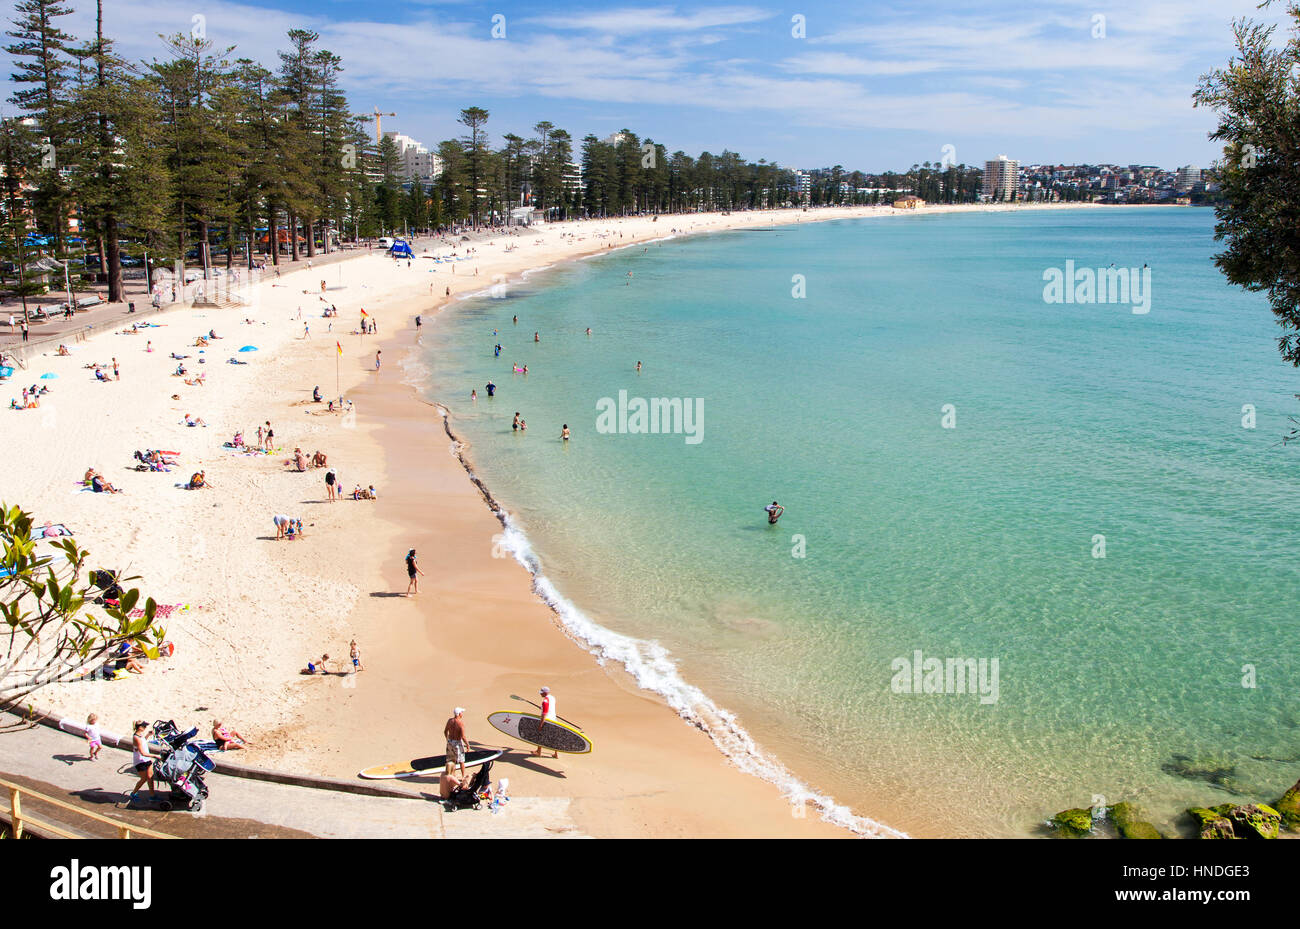 Manly Beach, Sydney, Australia - Stock Image